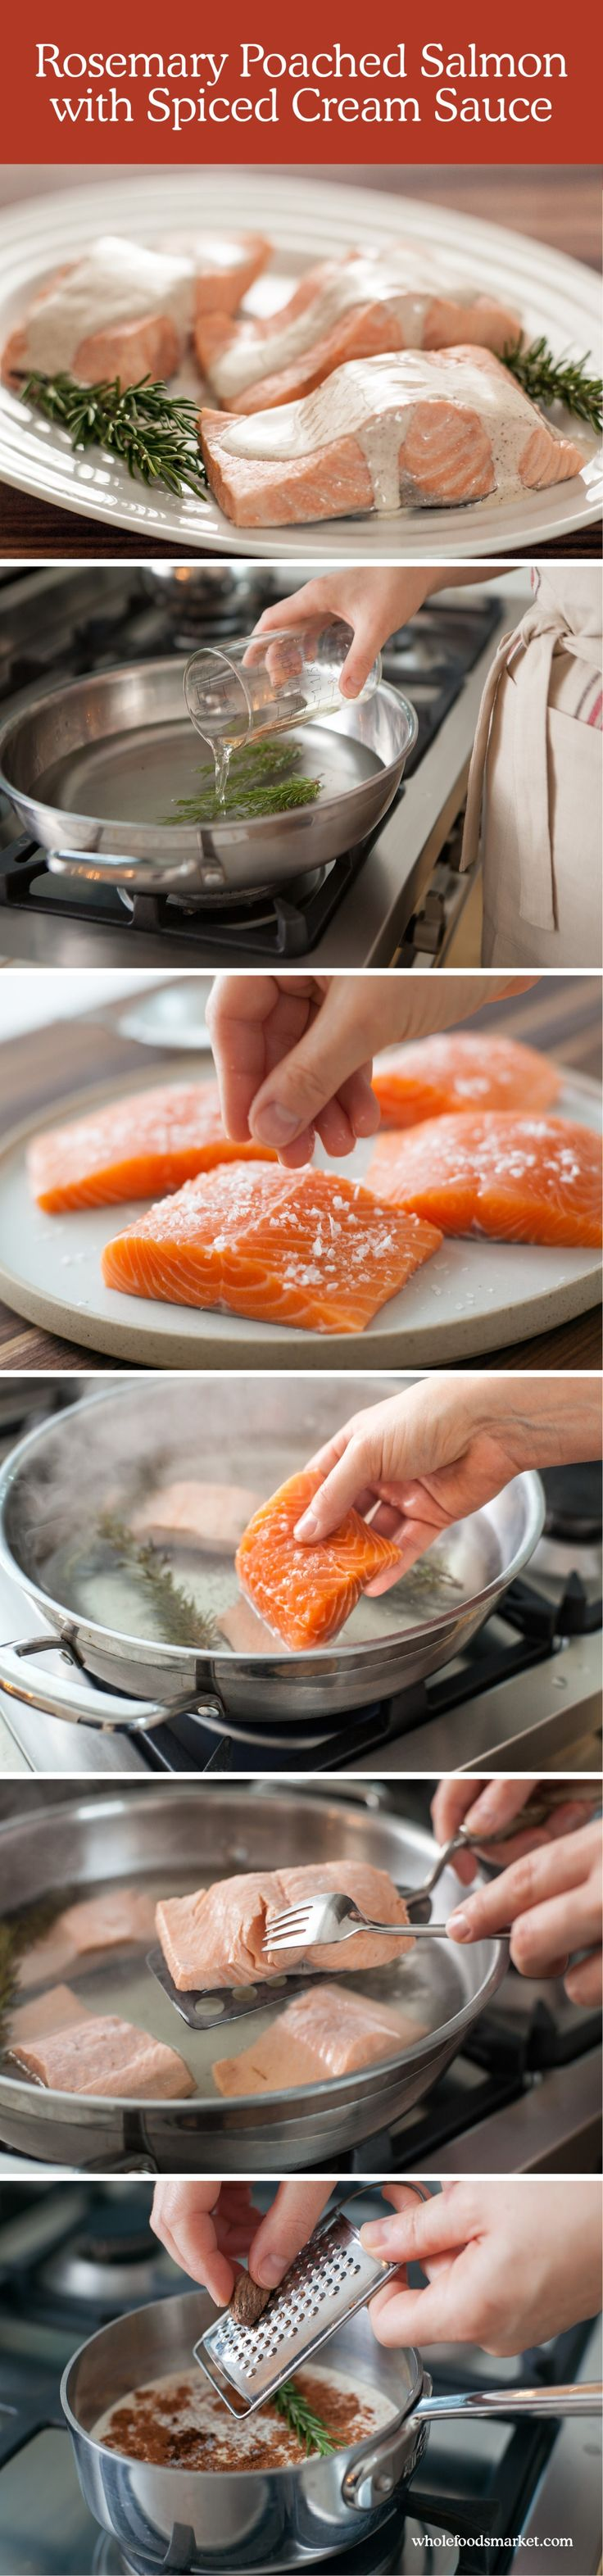 Rosemary Poached Salmon with Spiced Cream Sauce // Step-by-Step Recipe // Holiday How To // Whole Foods Market